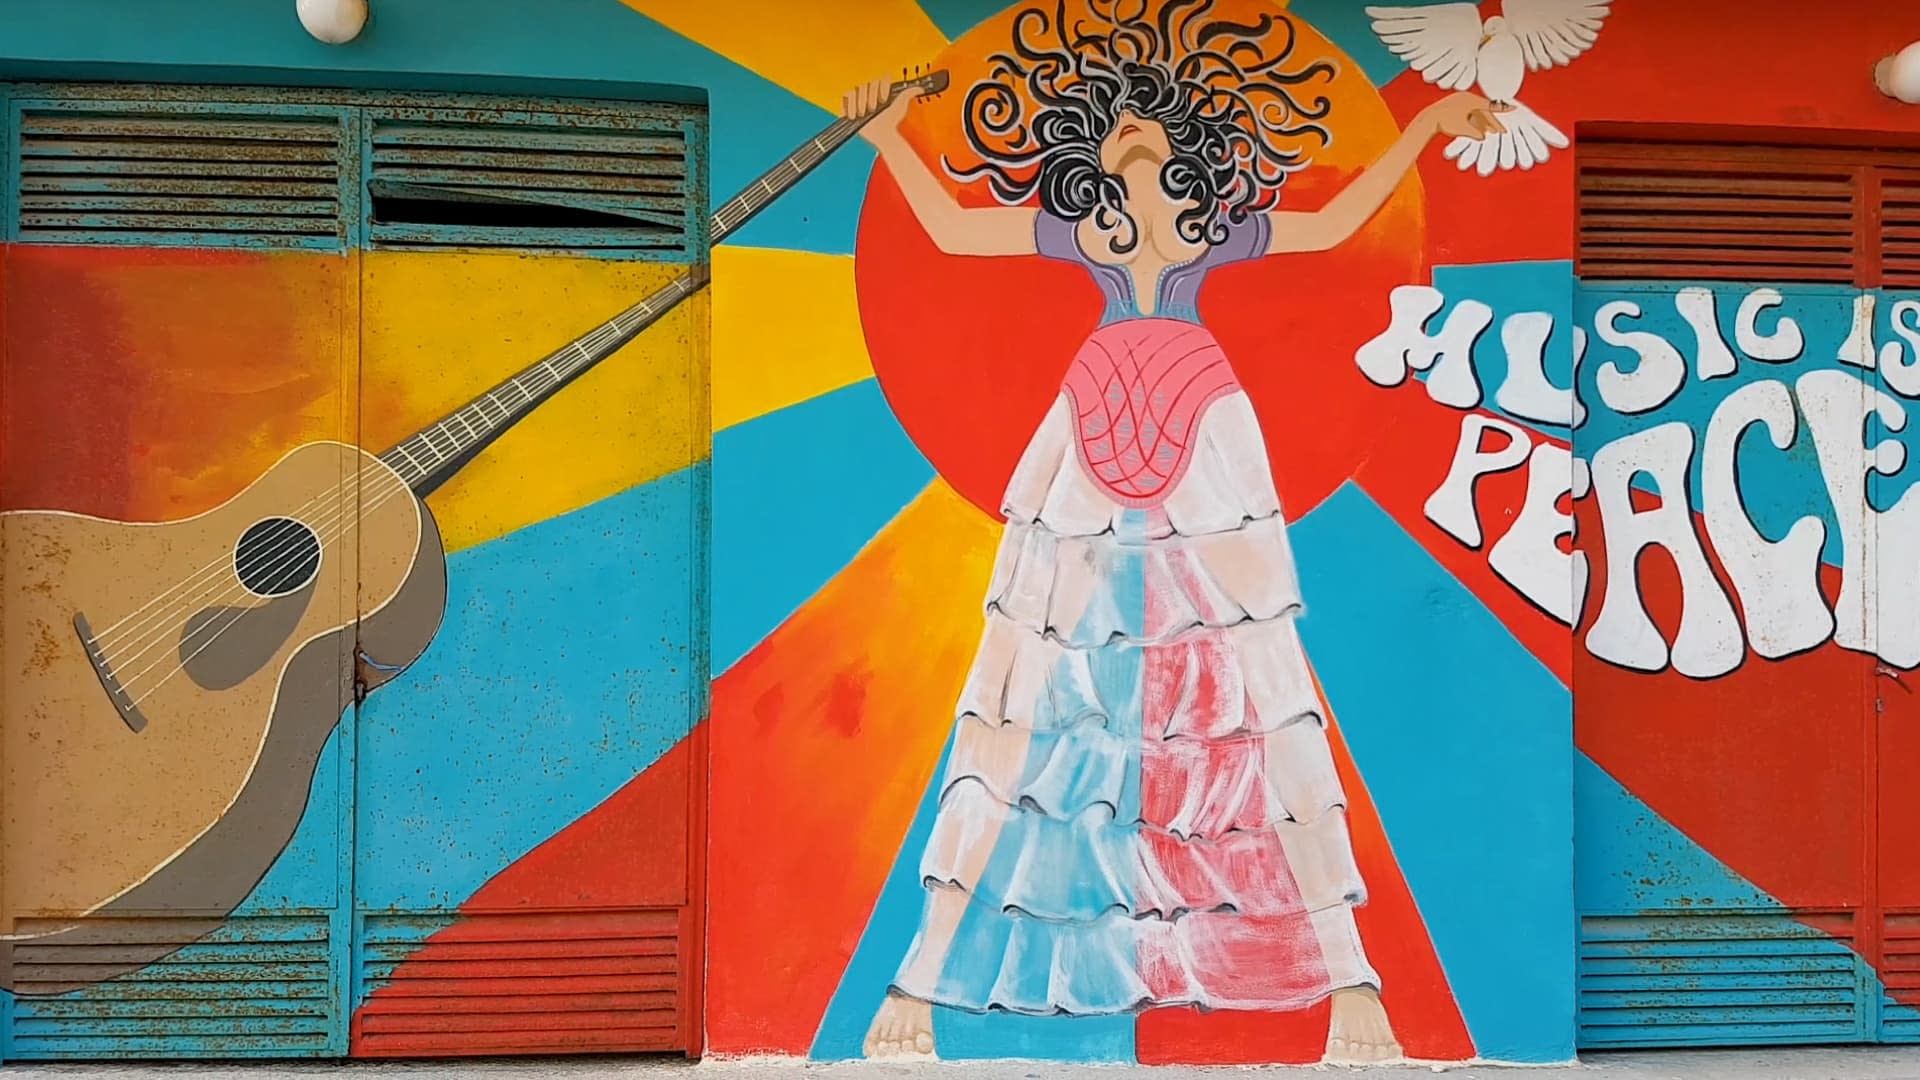 Hippie wall art in Matala with the slogan: Music is my weapon, Peace is in my soul